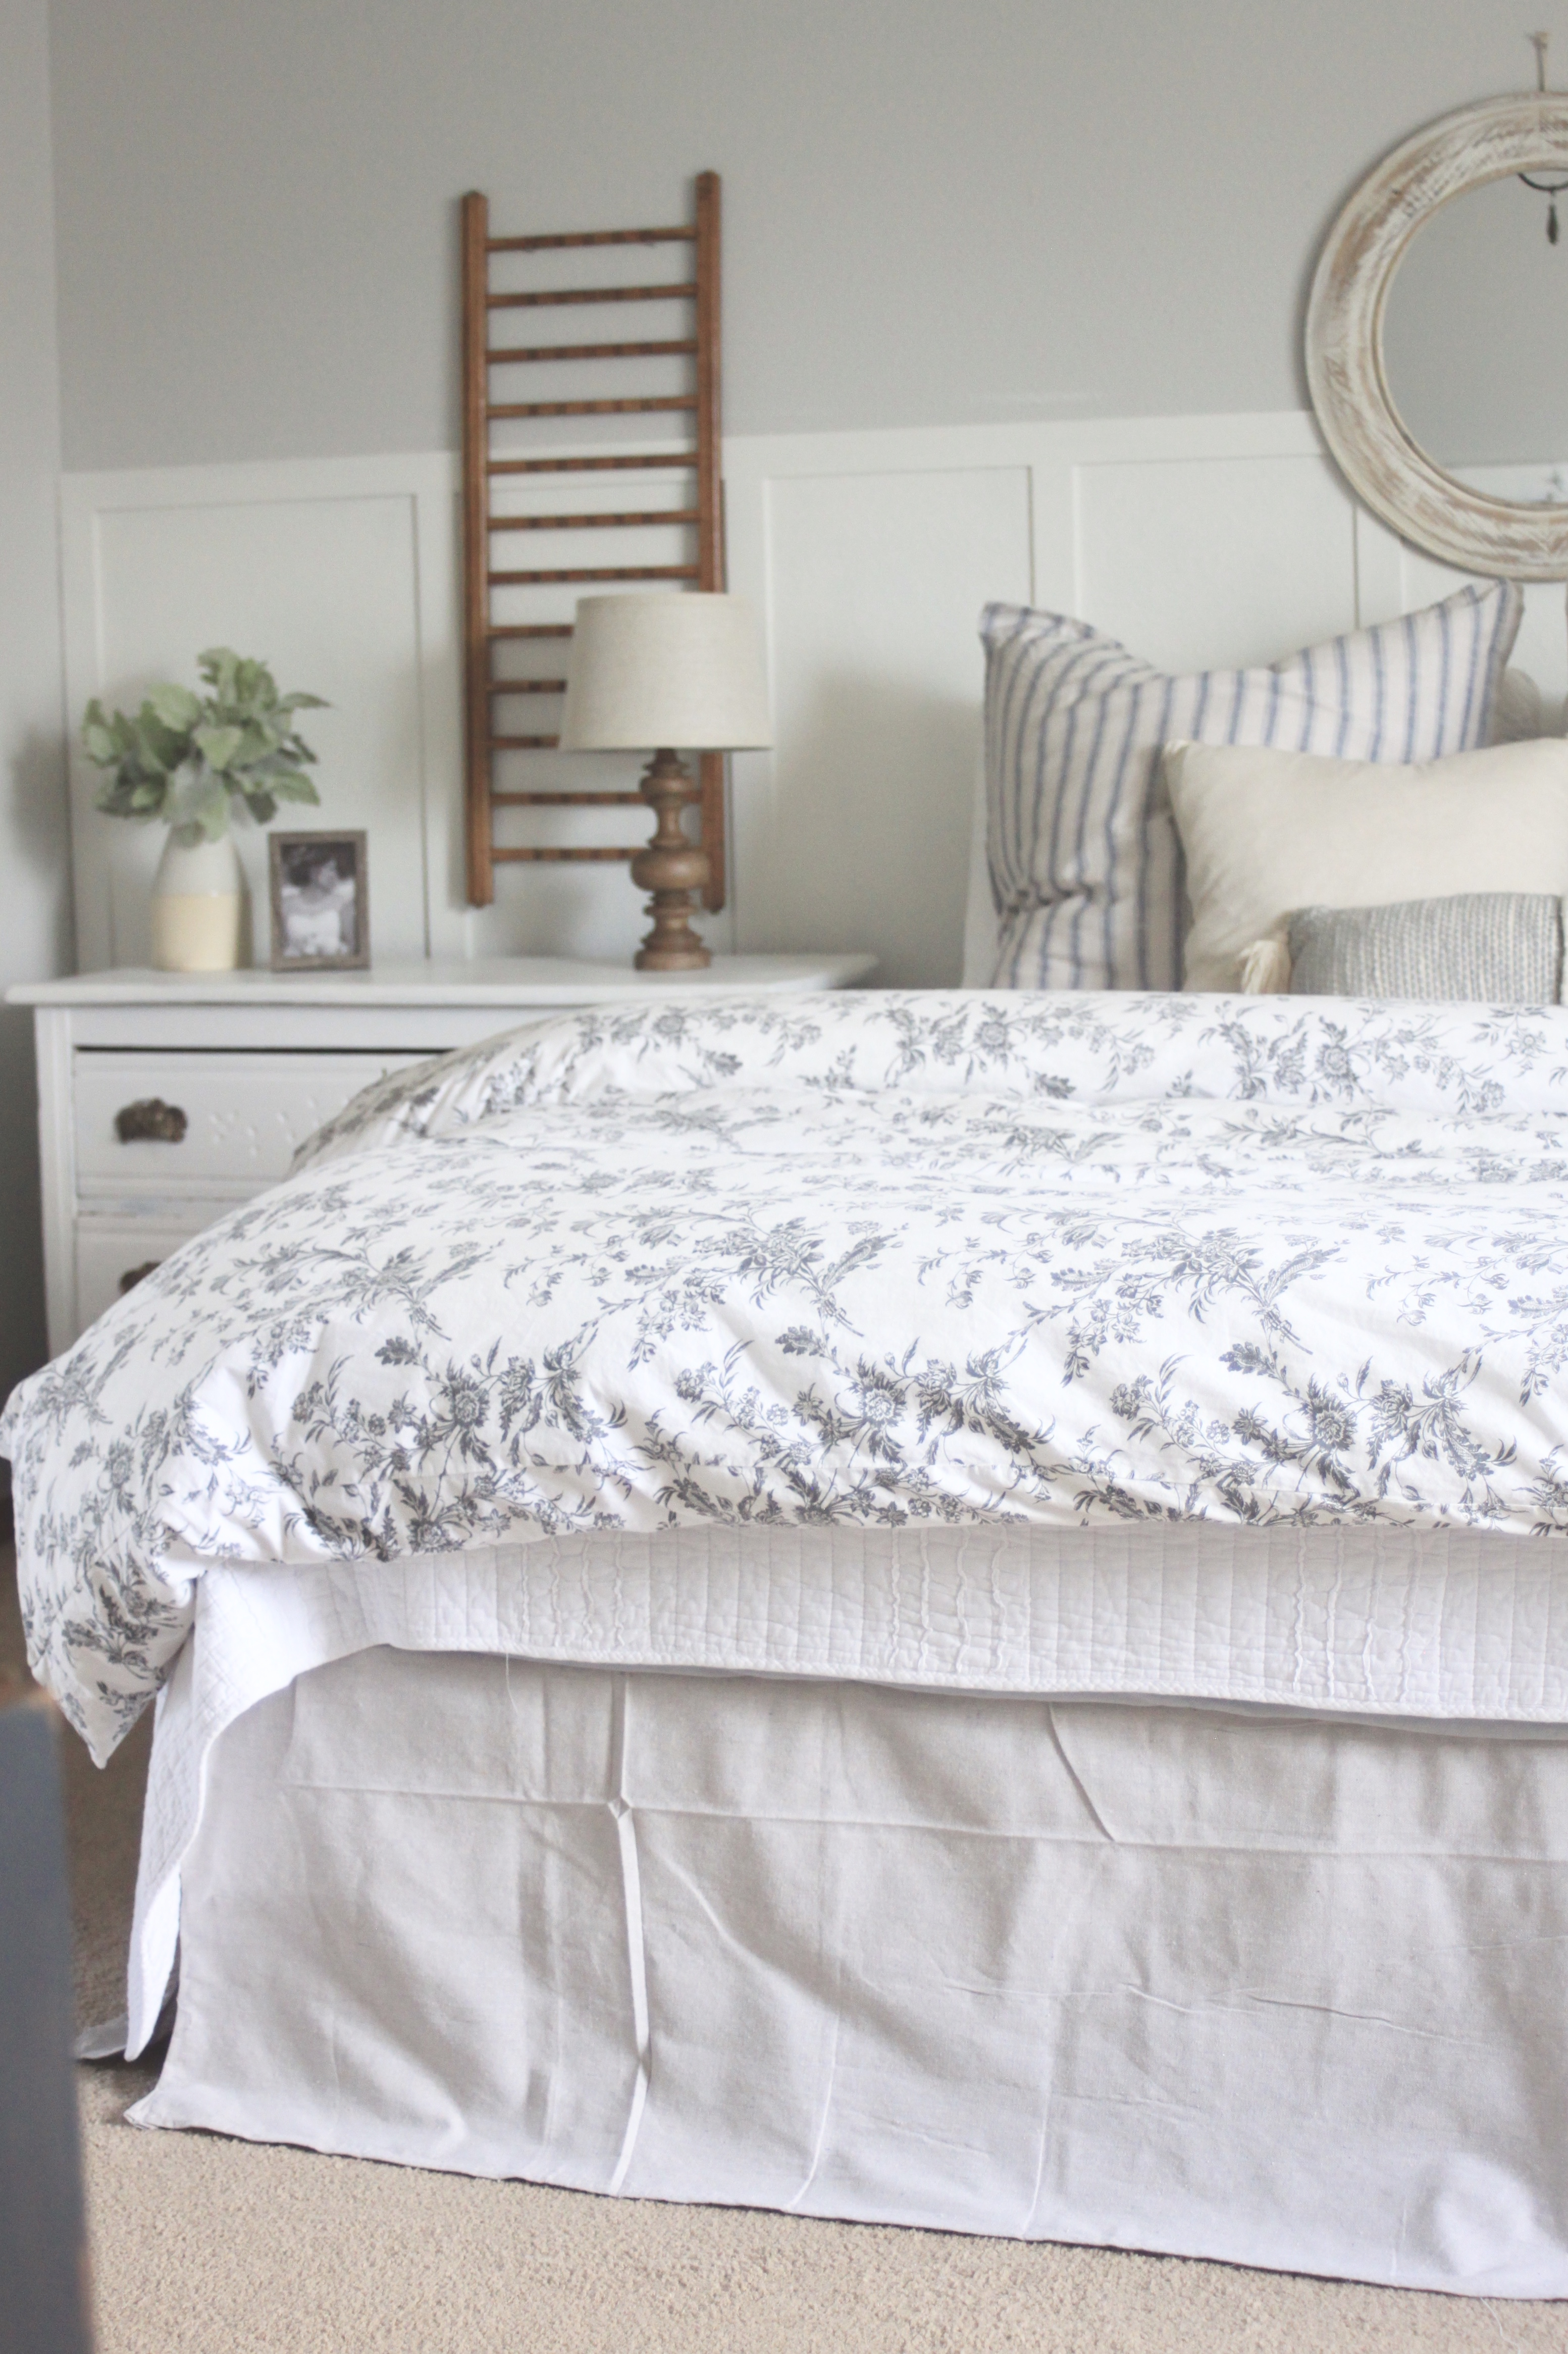 Diy Bedskirt Using One 9x12 Dropcloth Hand Gathered Home